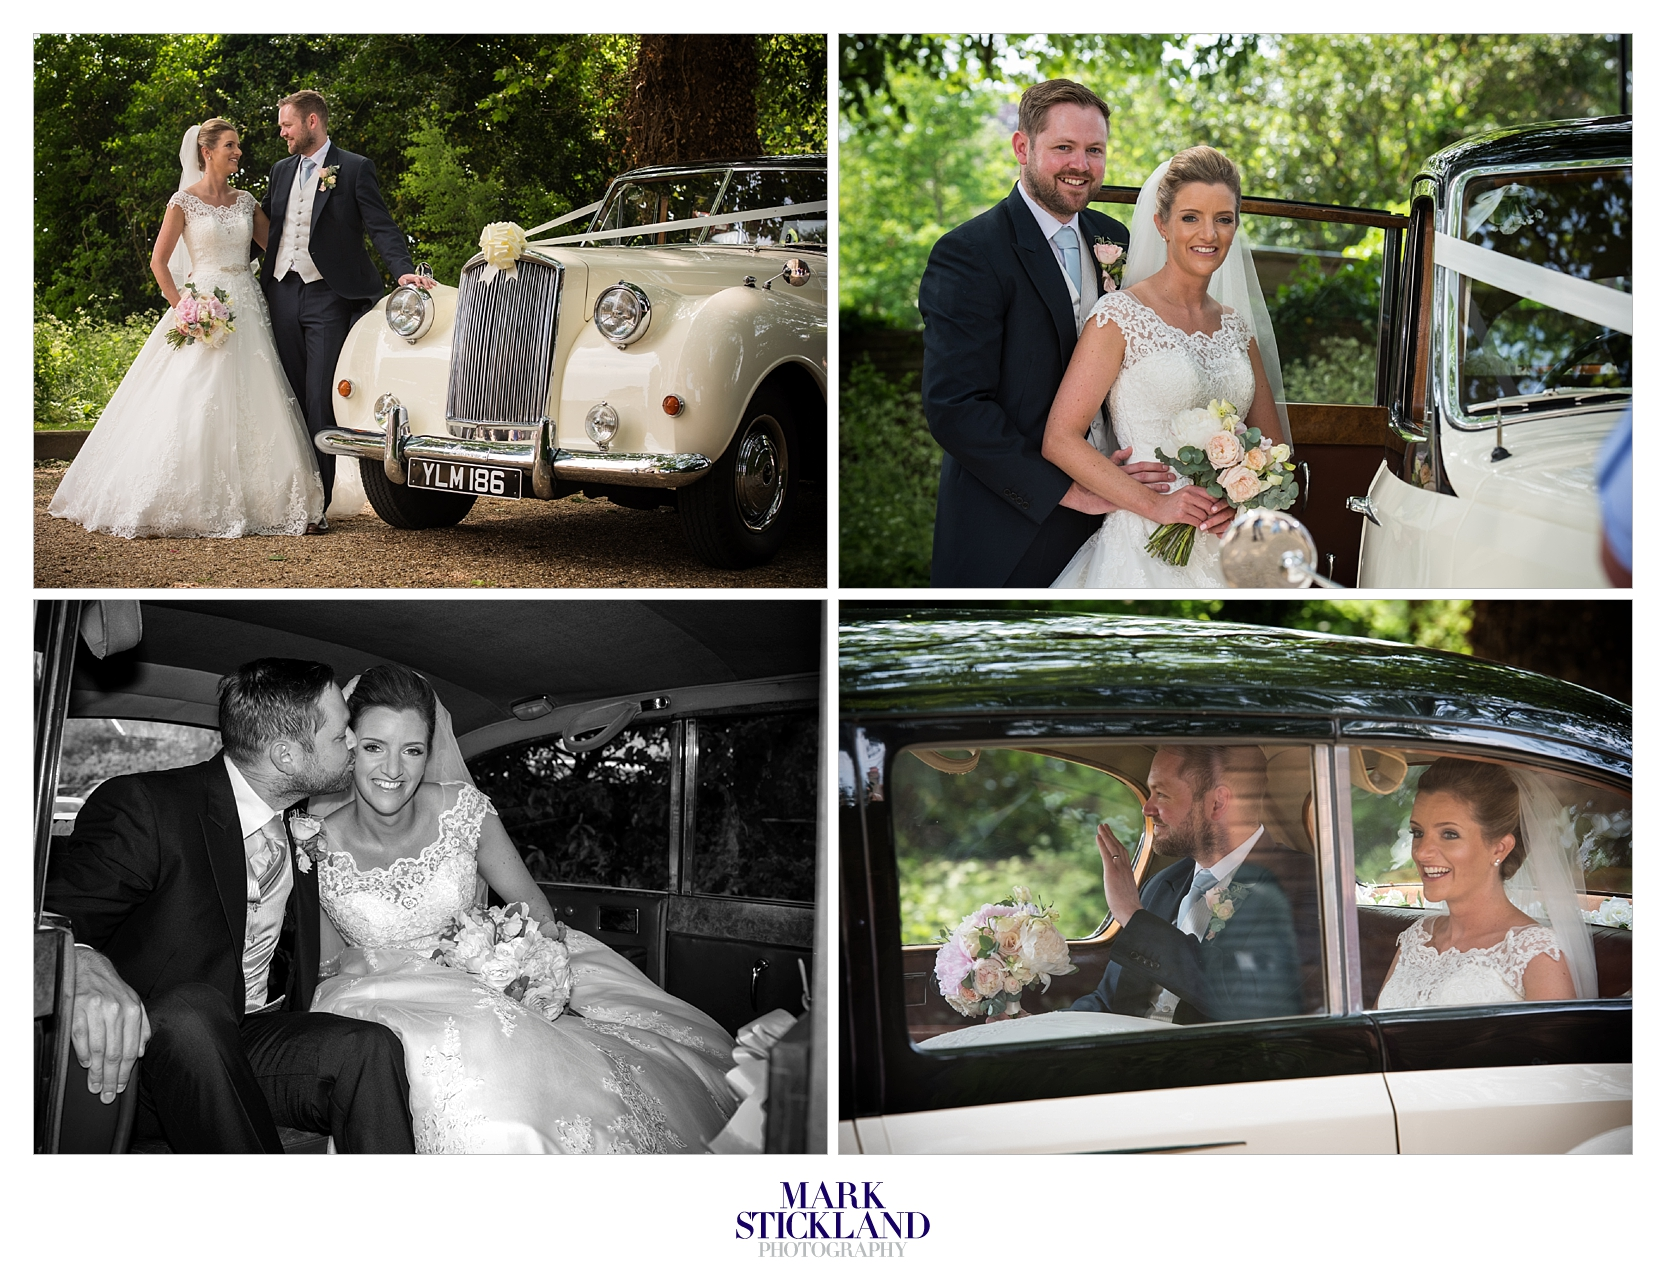 017.deans_court_wedding_wimborne_dorset